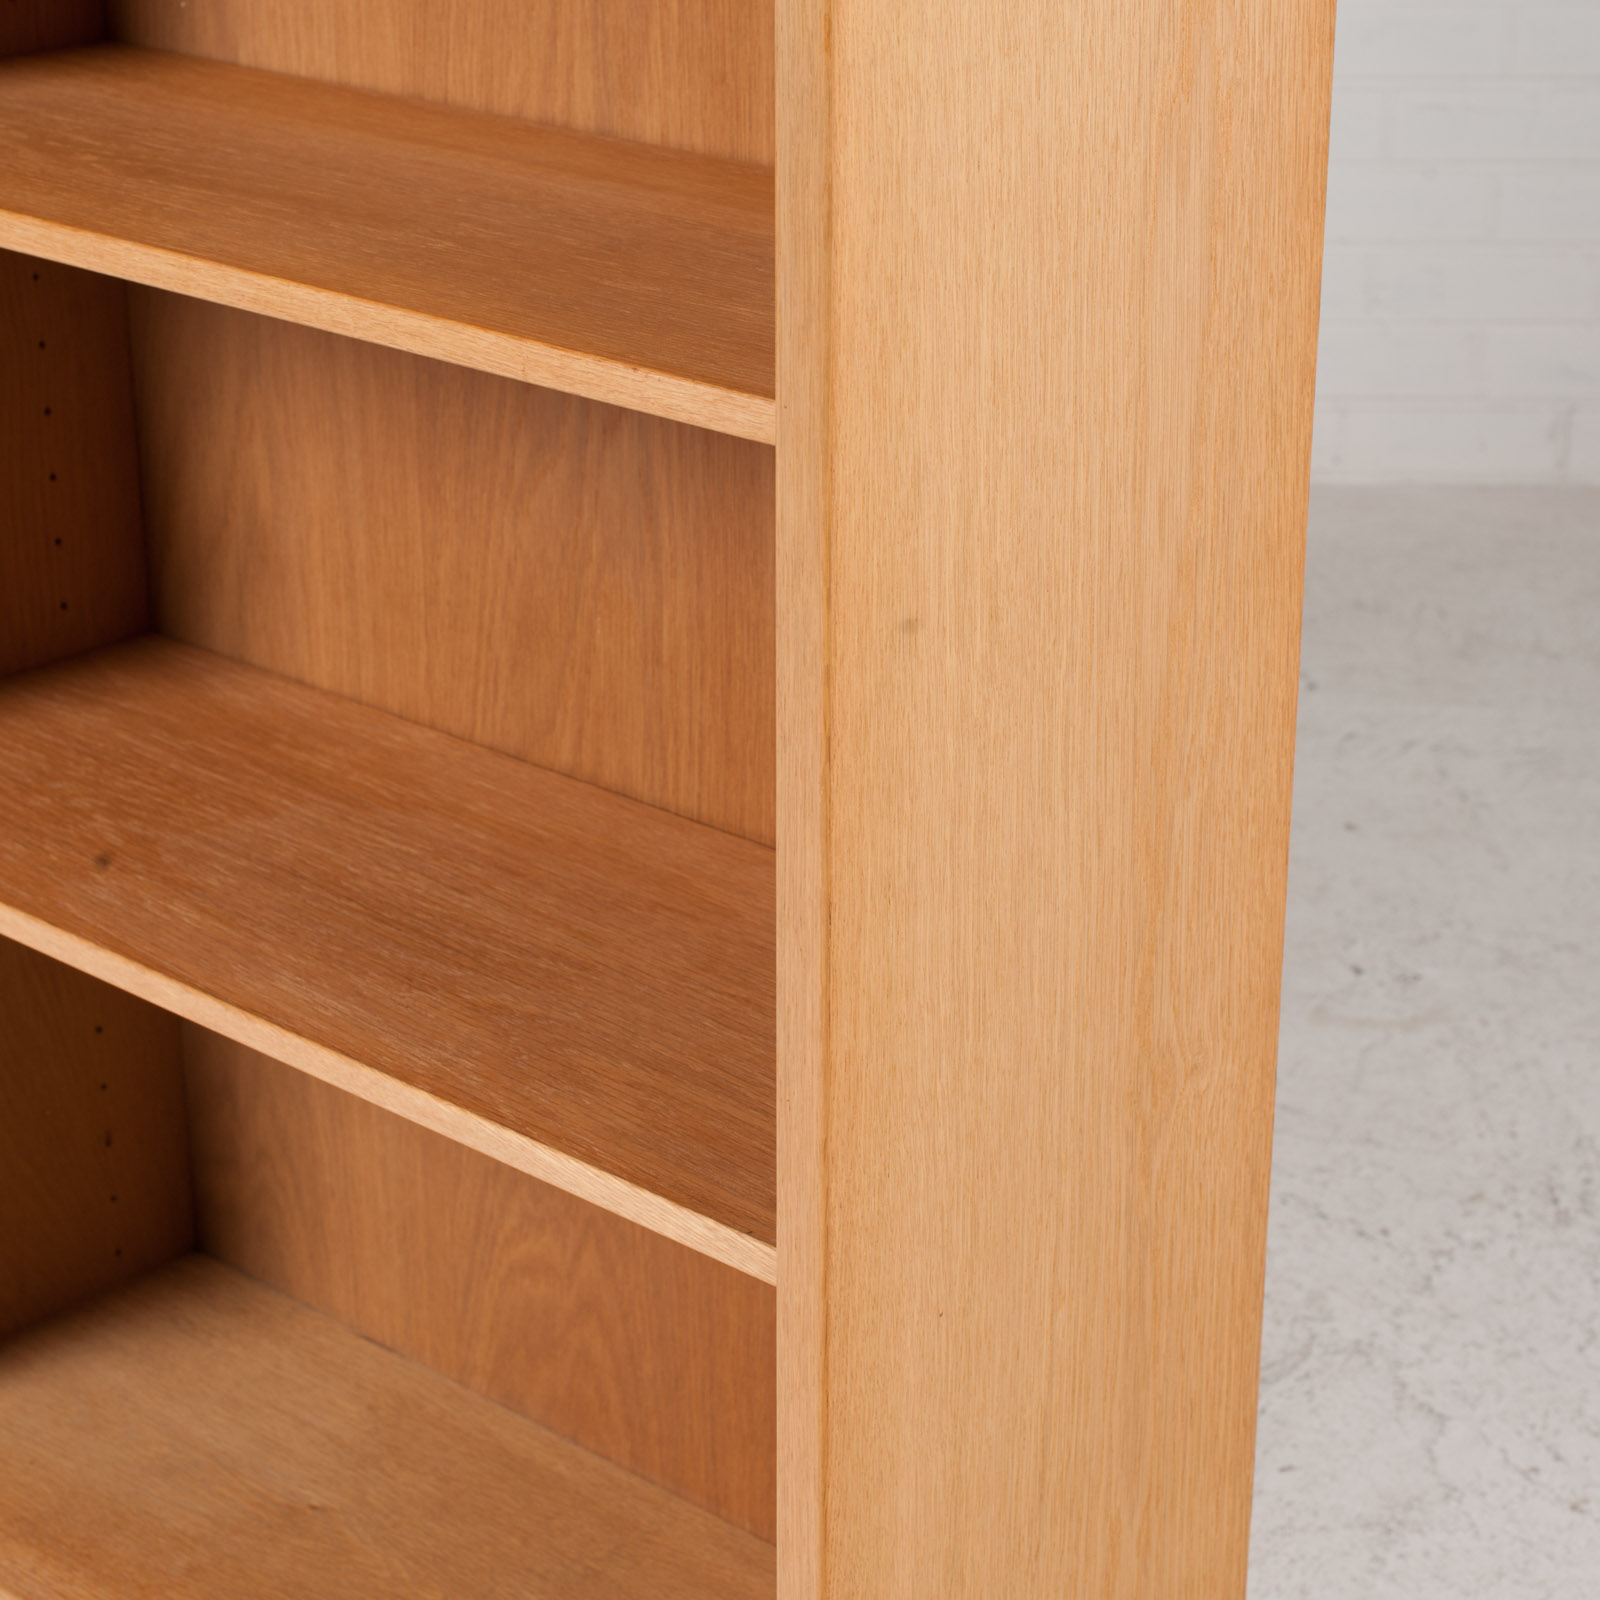 Bookcase By Borge Mogensen In Oak 1960s Denmark 09